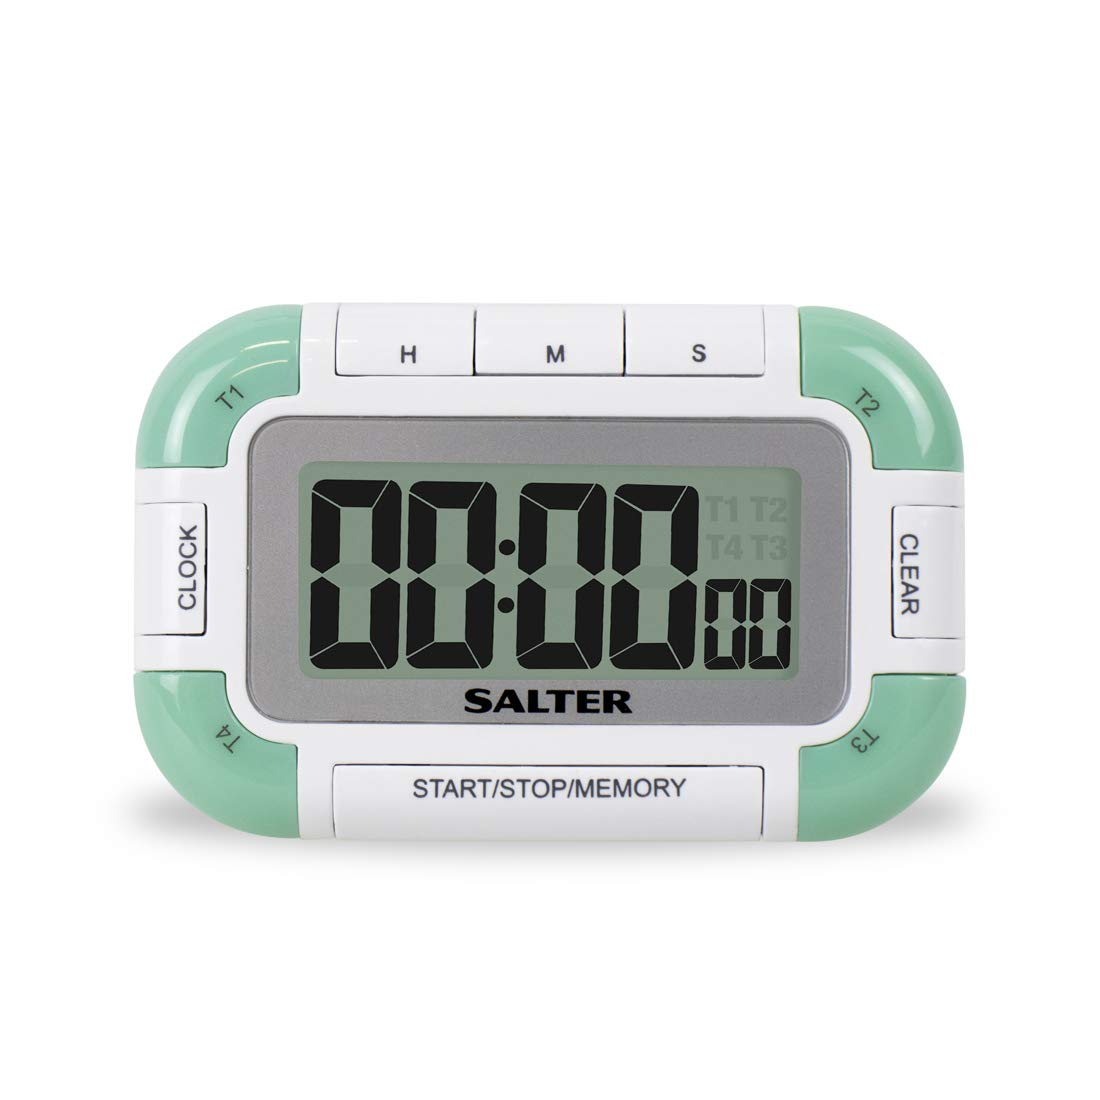 Salter 4 Way Digital Kitchen Timer – Electronic Cooking / Baking Stopwatch, 4 Timers with Individual Loud Beeps, Memory Function, Magnetic/Self Standing, Easy Read LCD, up to 99 hrs 59 min 59 sec